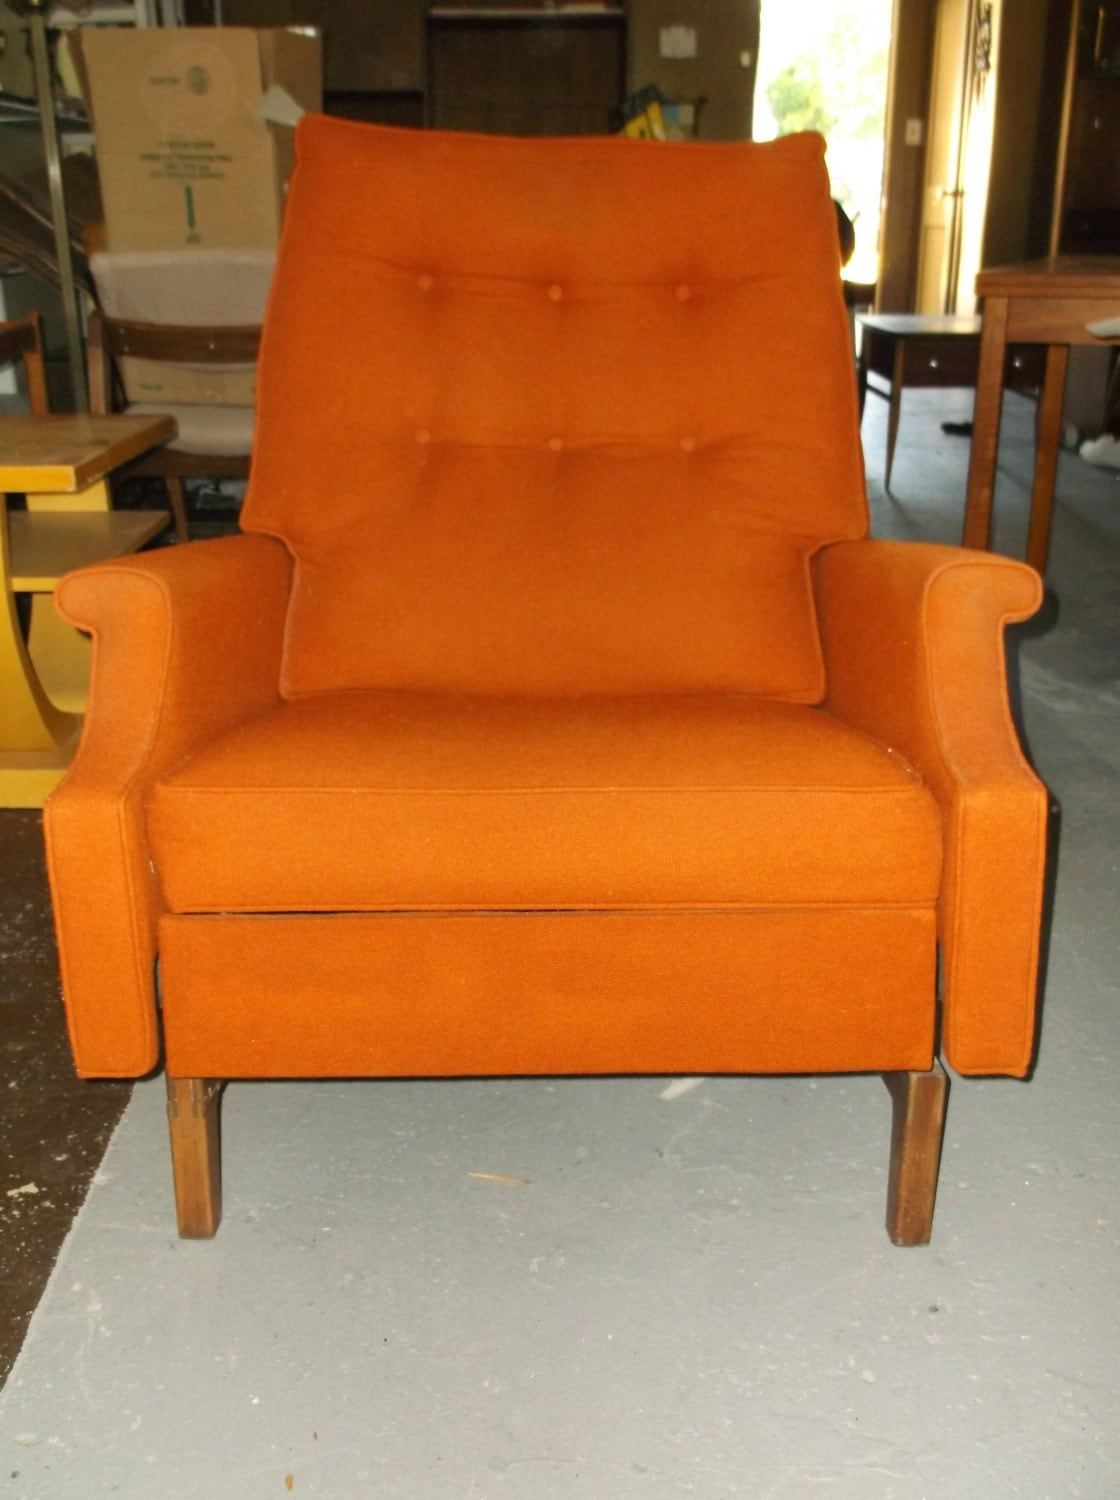 Popular Items For Reclining Chair On Etsy